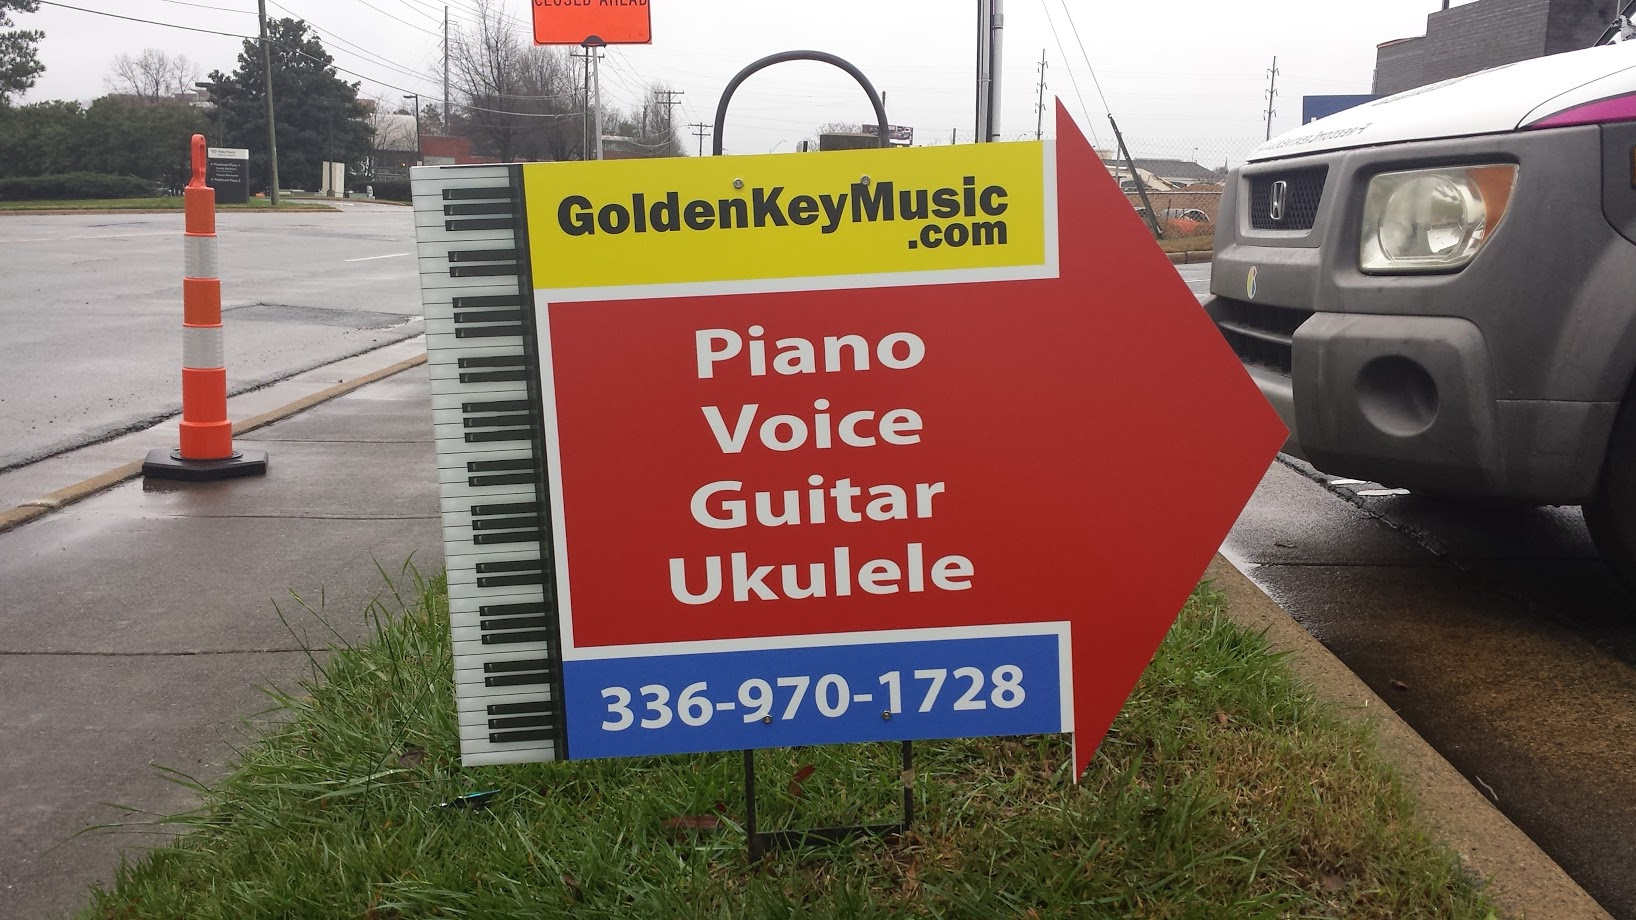 golden key music signage